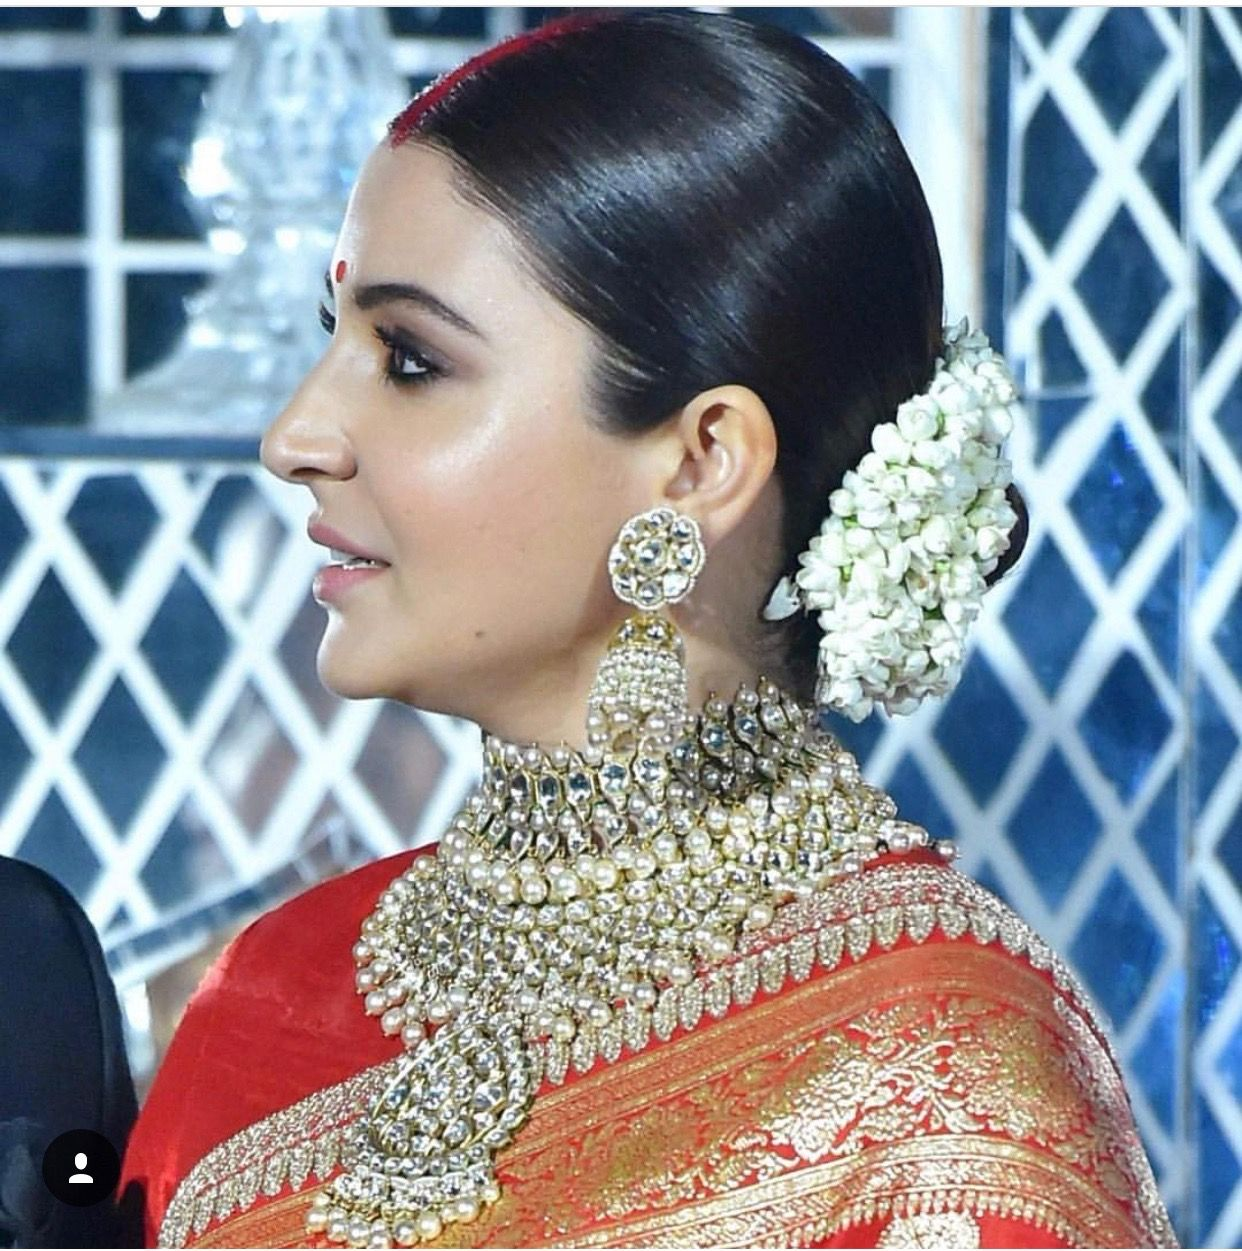 Makeup Jewellery Hair Of Anushka Sharma For Her Wedding Reception Sabyasachi Virushka Bridal Jewellery Indian Bollywood Wedding Indian Wedding Jewelry